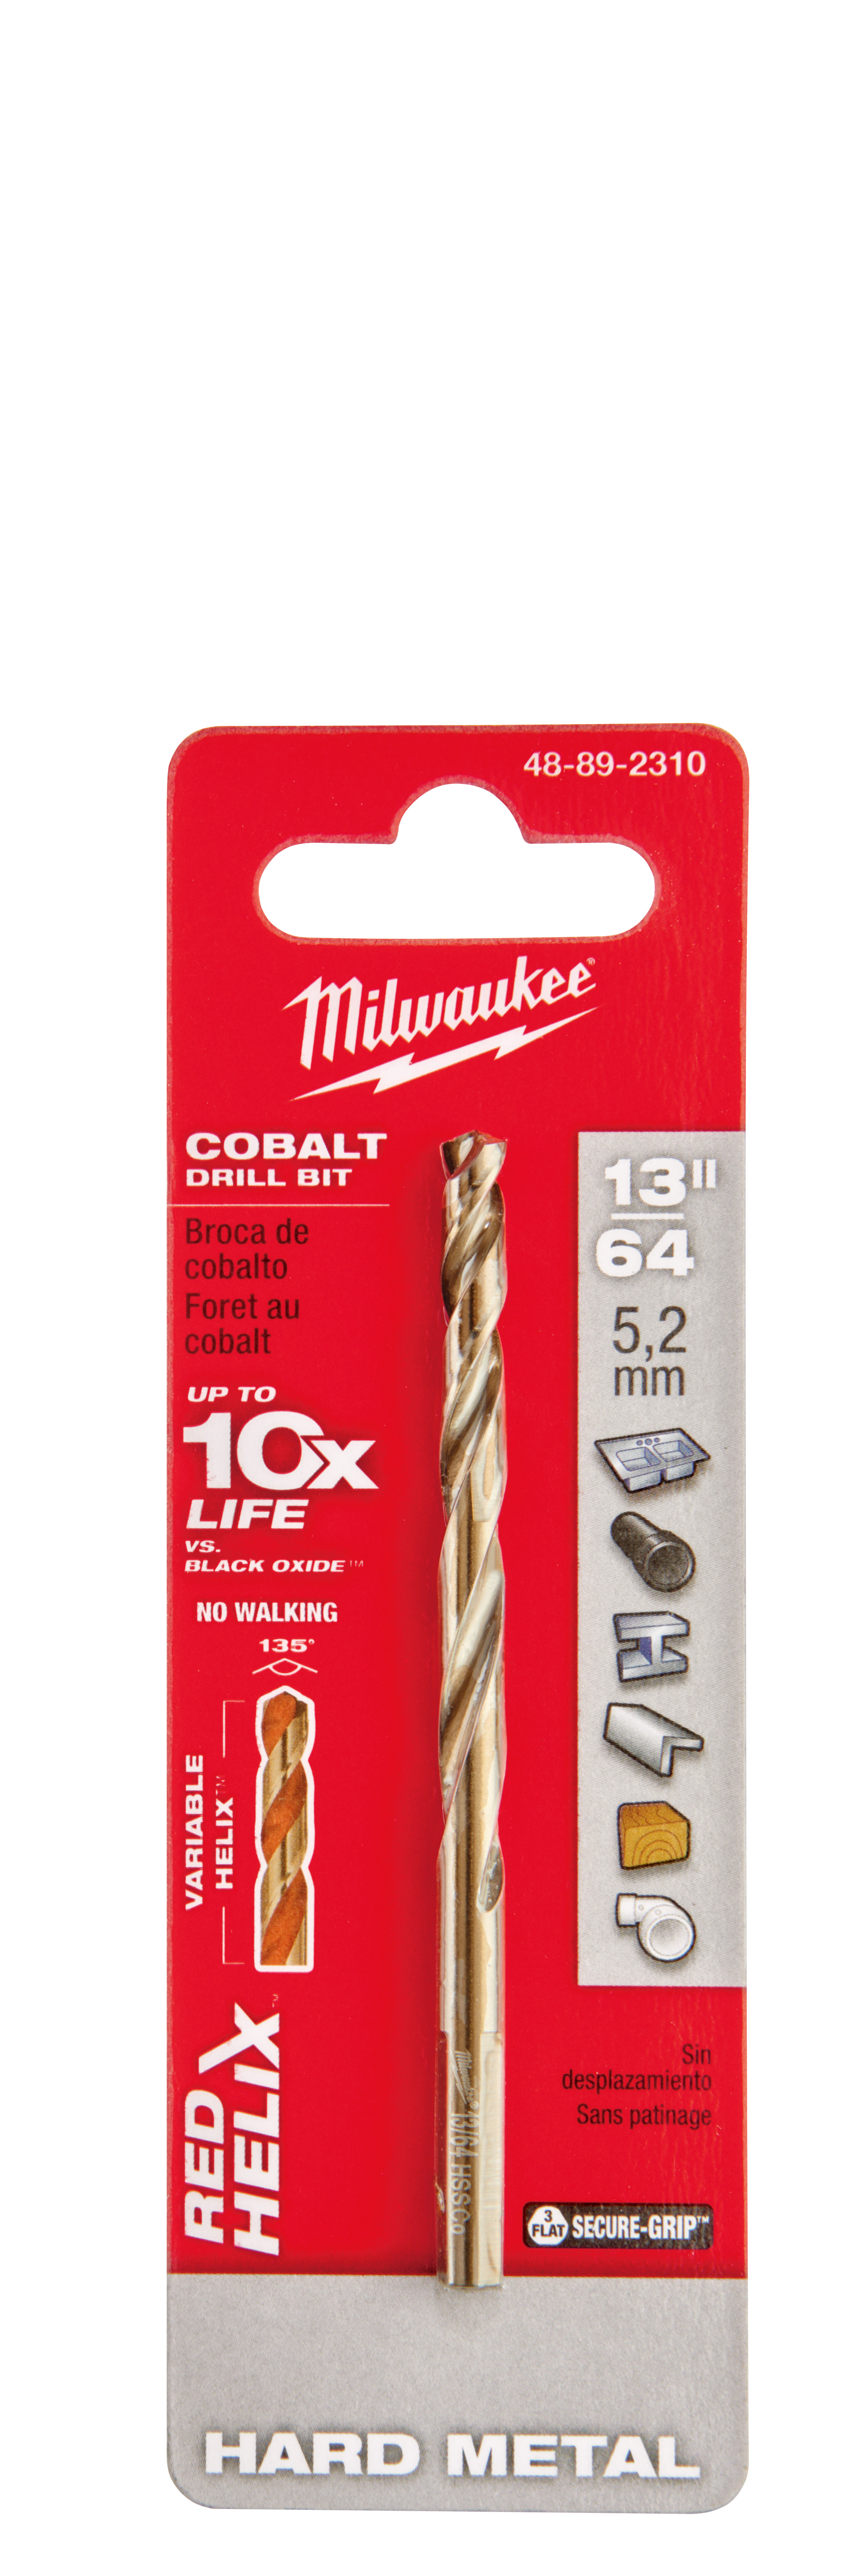 Milwaukee® 48-89-2310 RED HELIX™ Jobber Length Twist Drill Bit, 13/64 in Drill - Fraction, 0.2031 in Drill - Decimal Inch, 135 deg Point, High Speed Cobalt, Uncoated